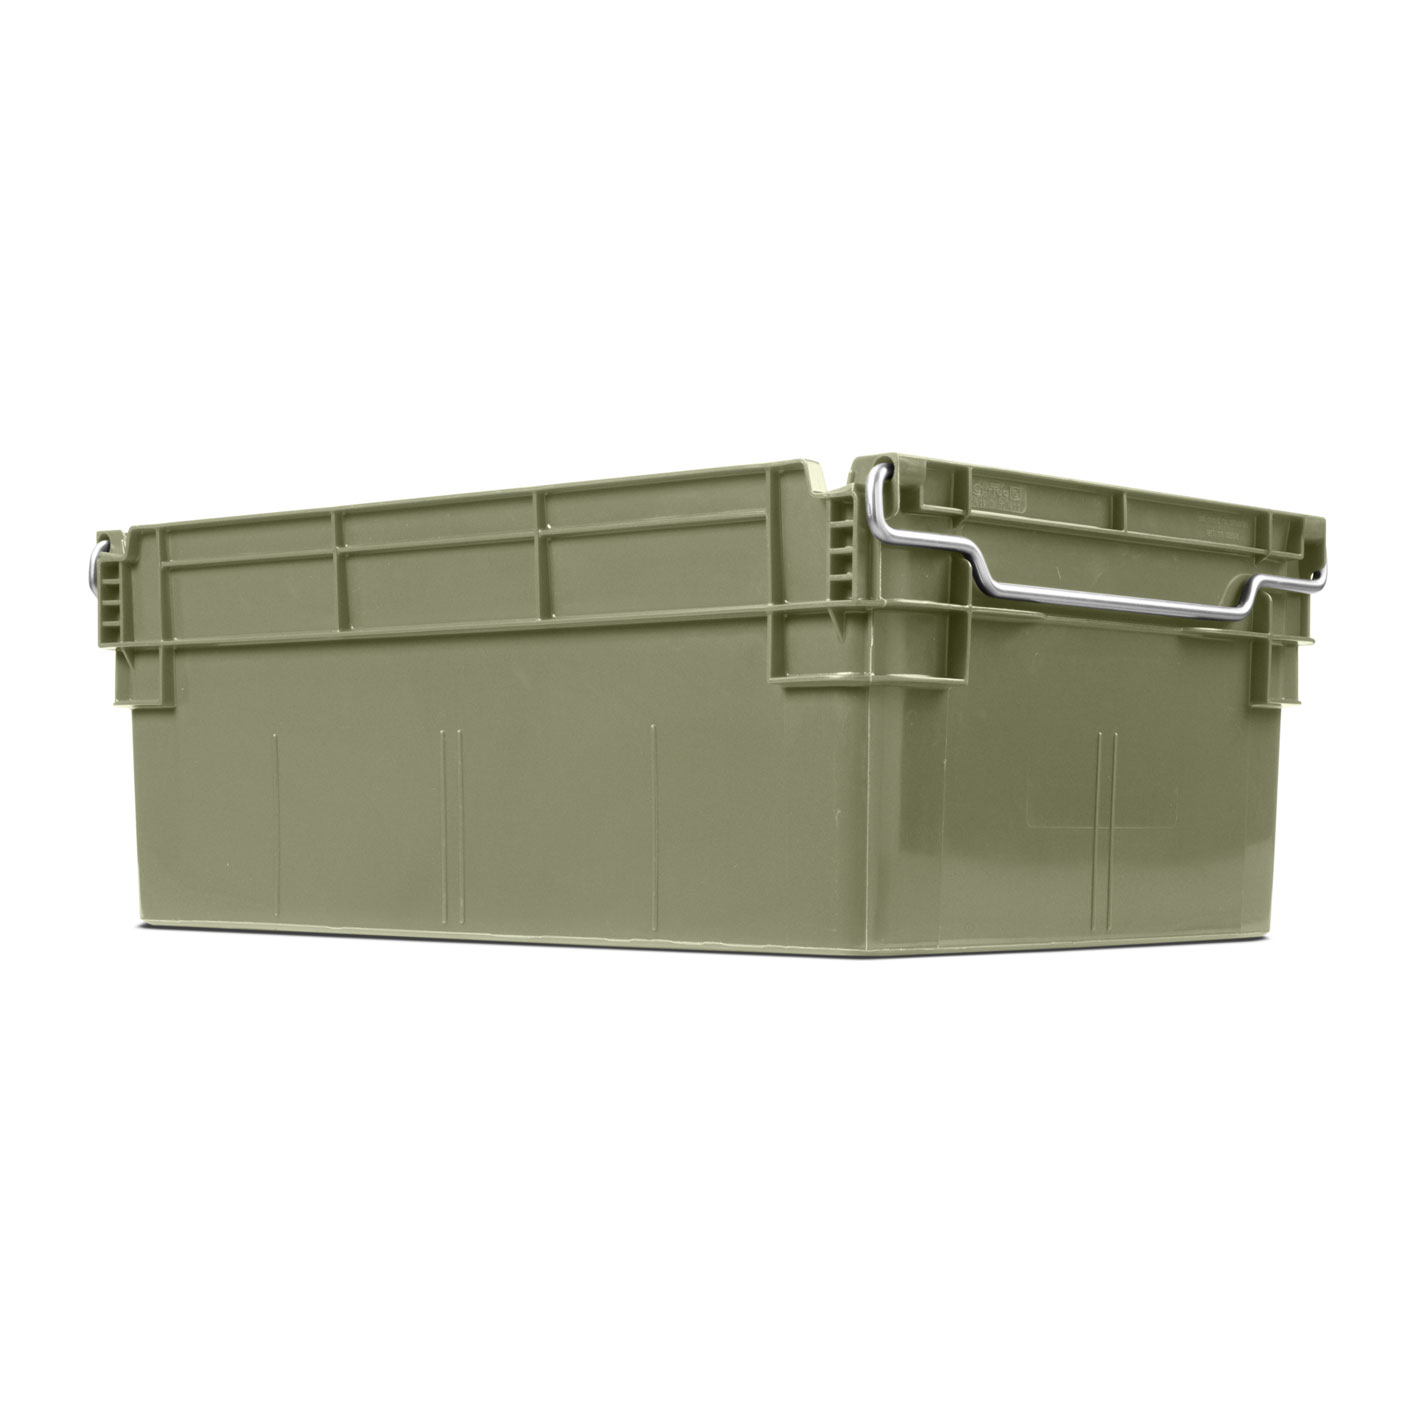 45 liter Container with stacking bars